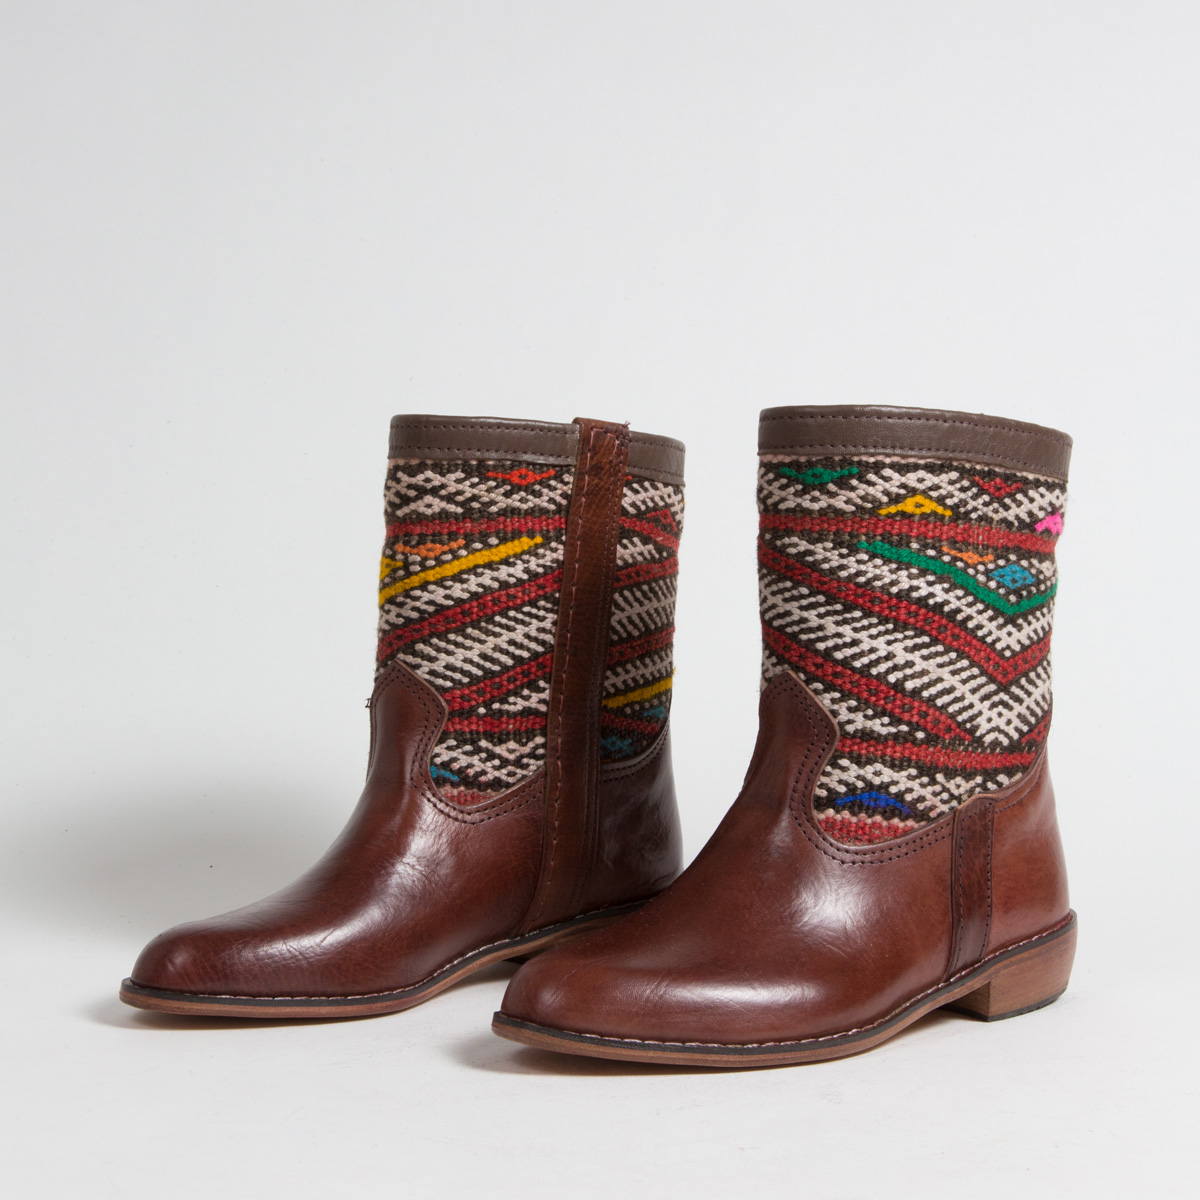 Bottines Kilim - images/kilim/bottines/mcm2-01-37-kilim-artisanat-cuir-ethnique-marocaine-bottine-femme-s.jpg